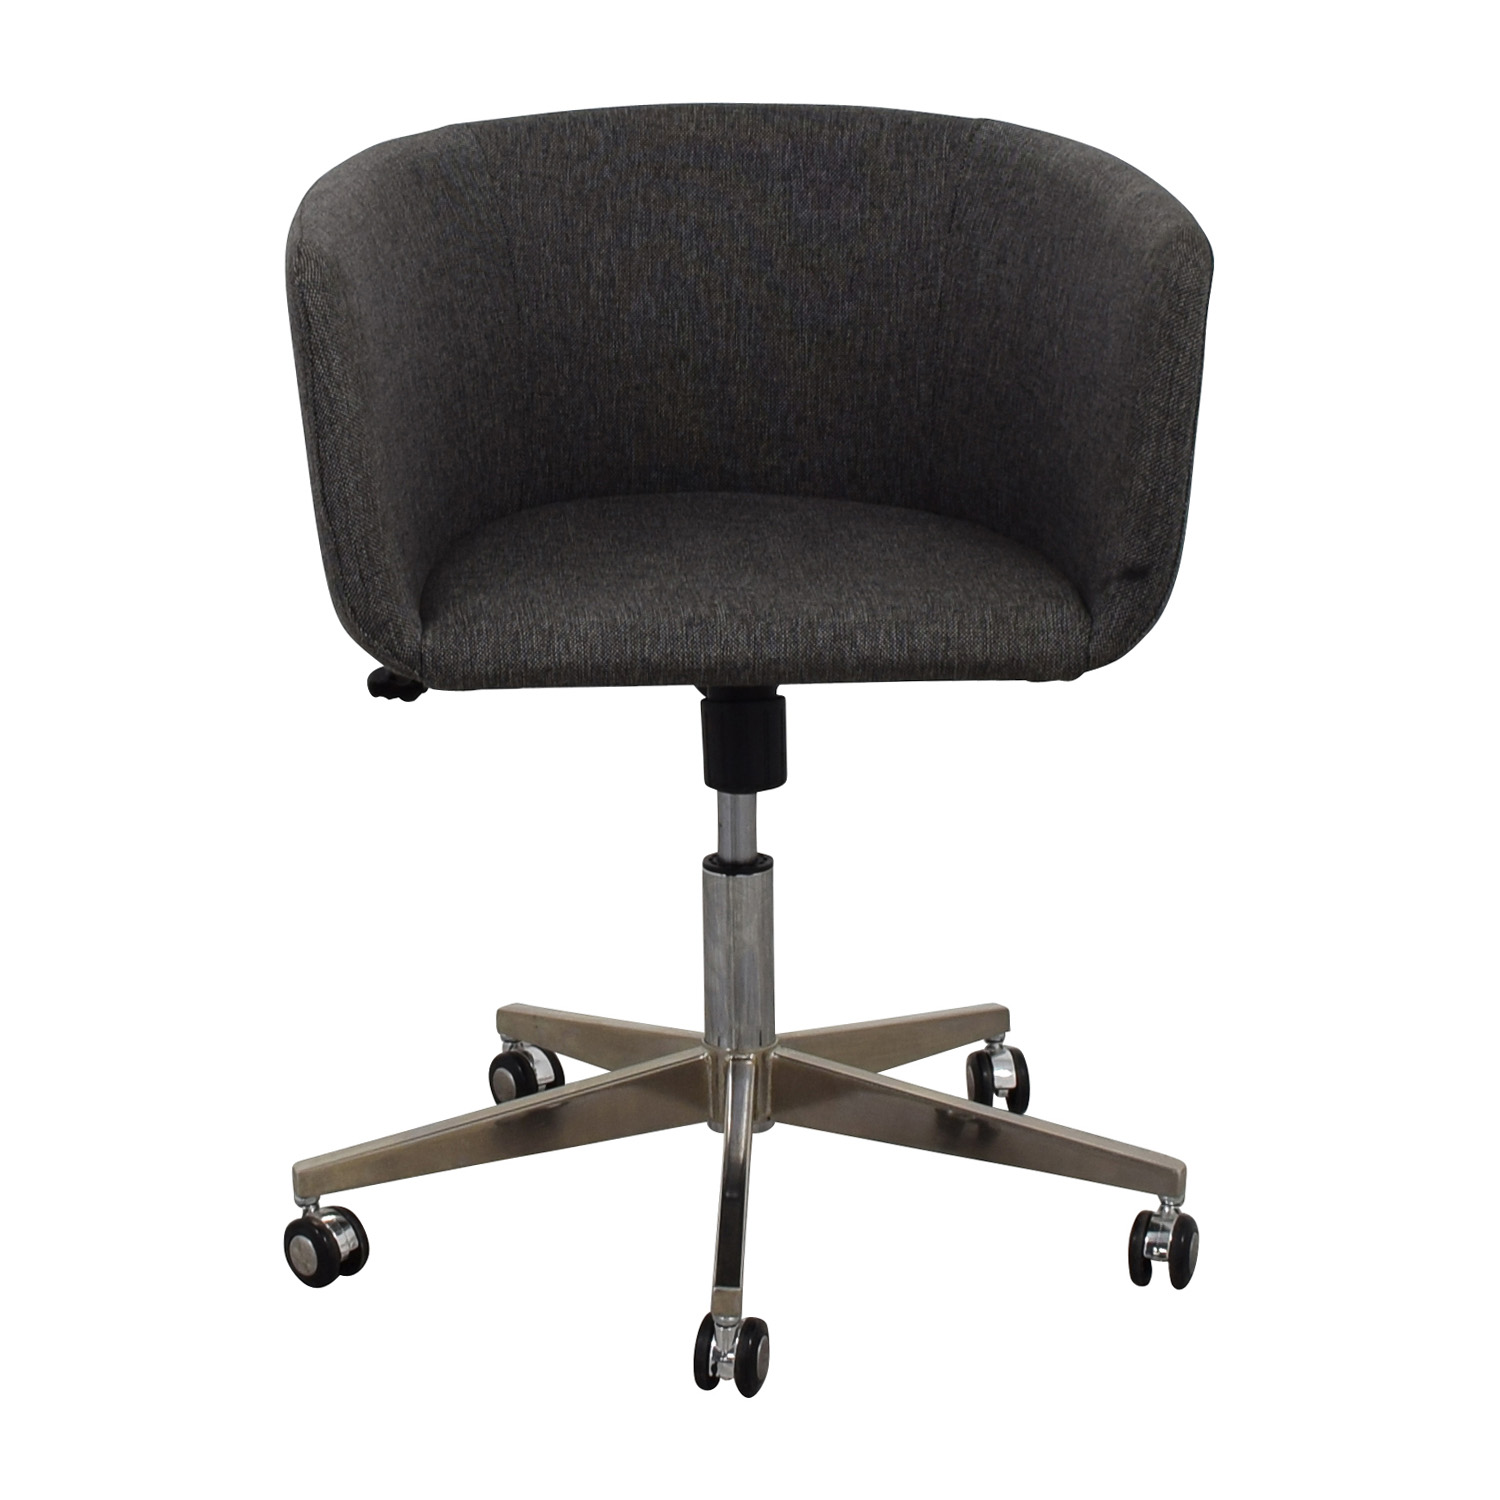 Modern Grey Office Chair with Chrome Wheels nj